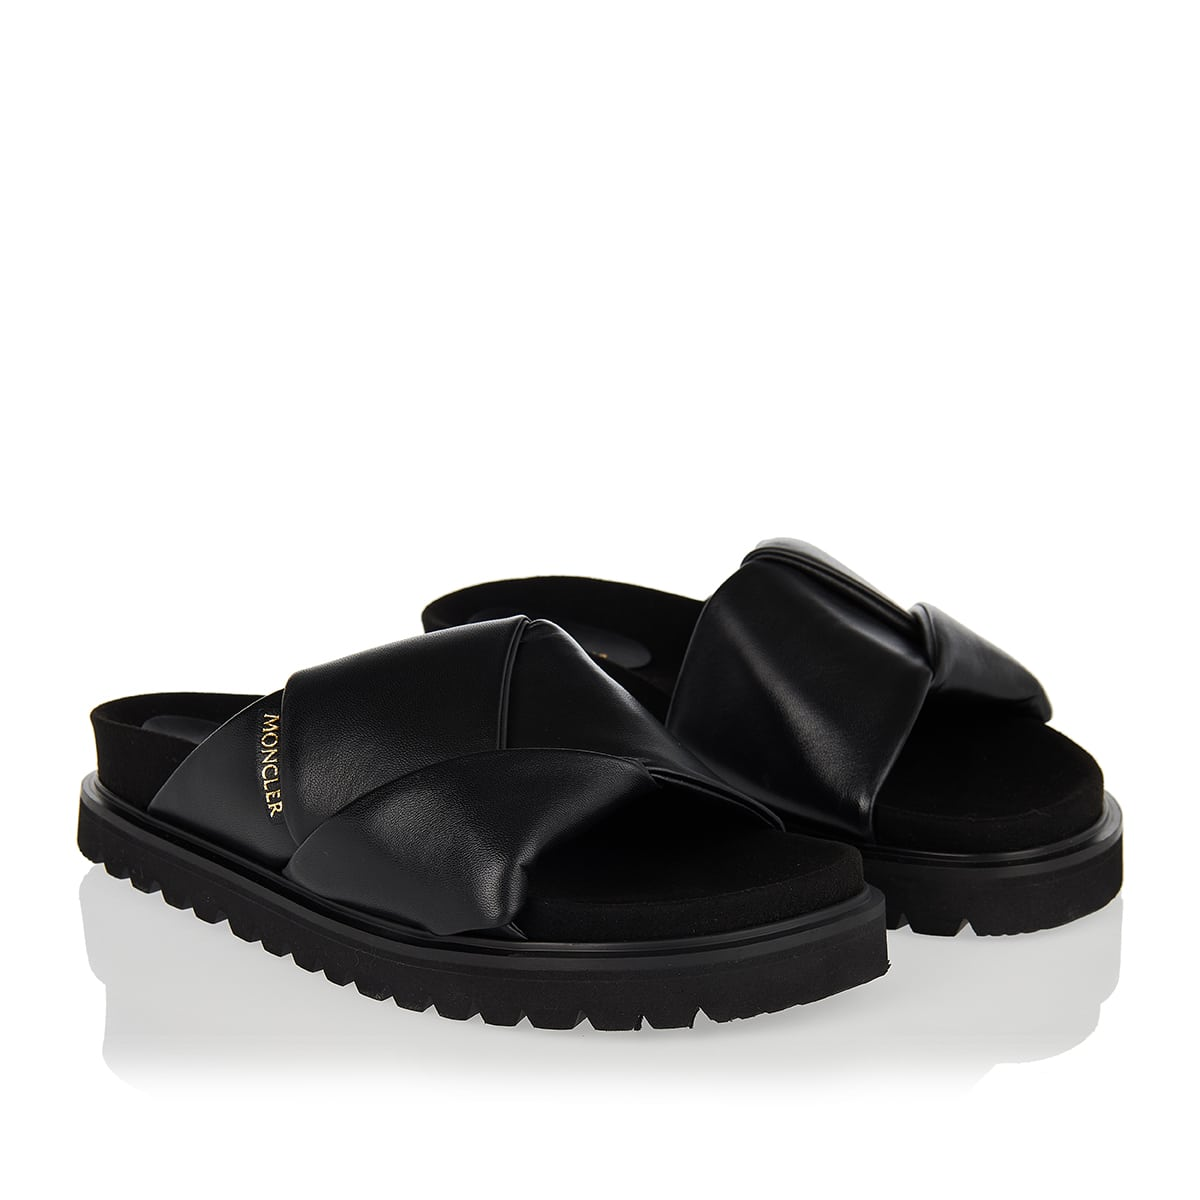 Fantine leather slides